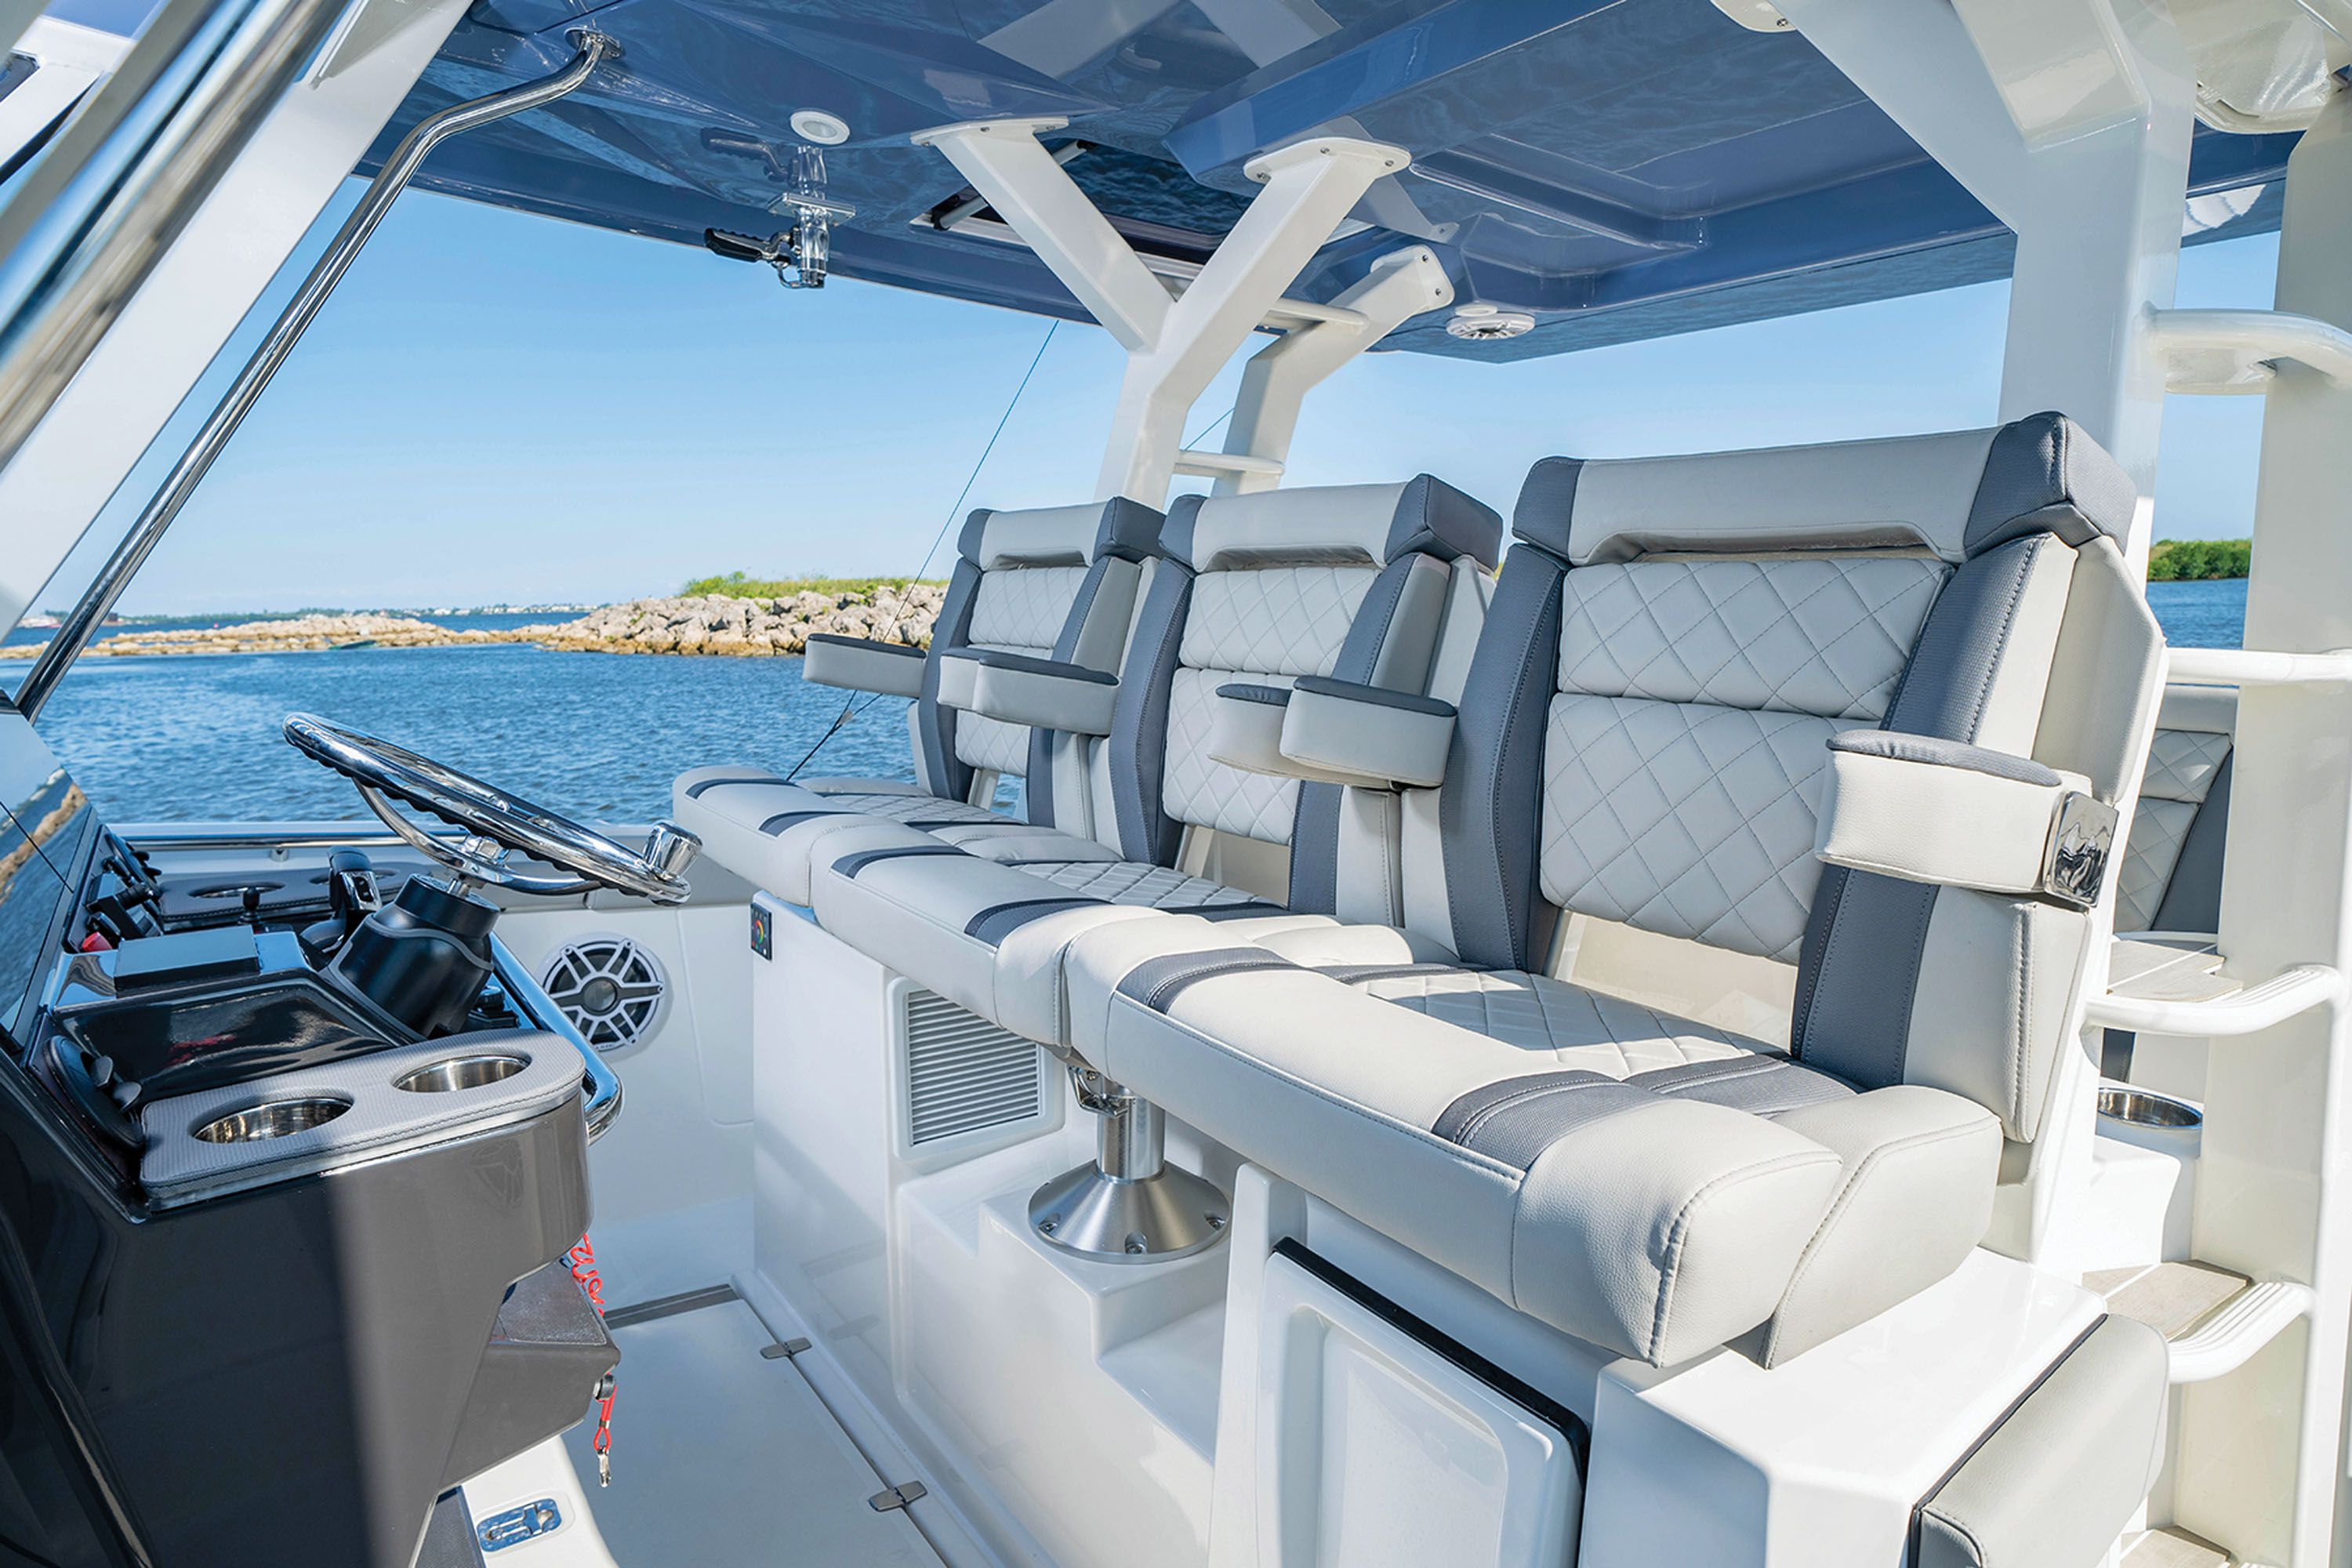 Captain's chairs with folding armrests and flip-up bolsters sit three at the helm.